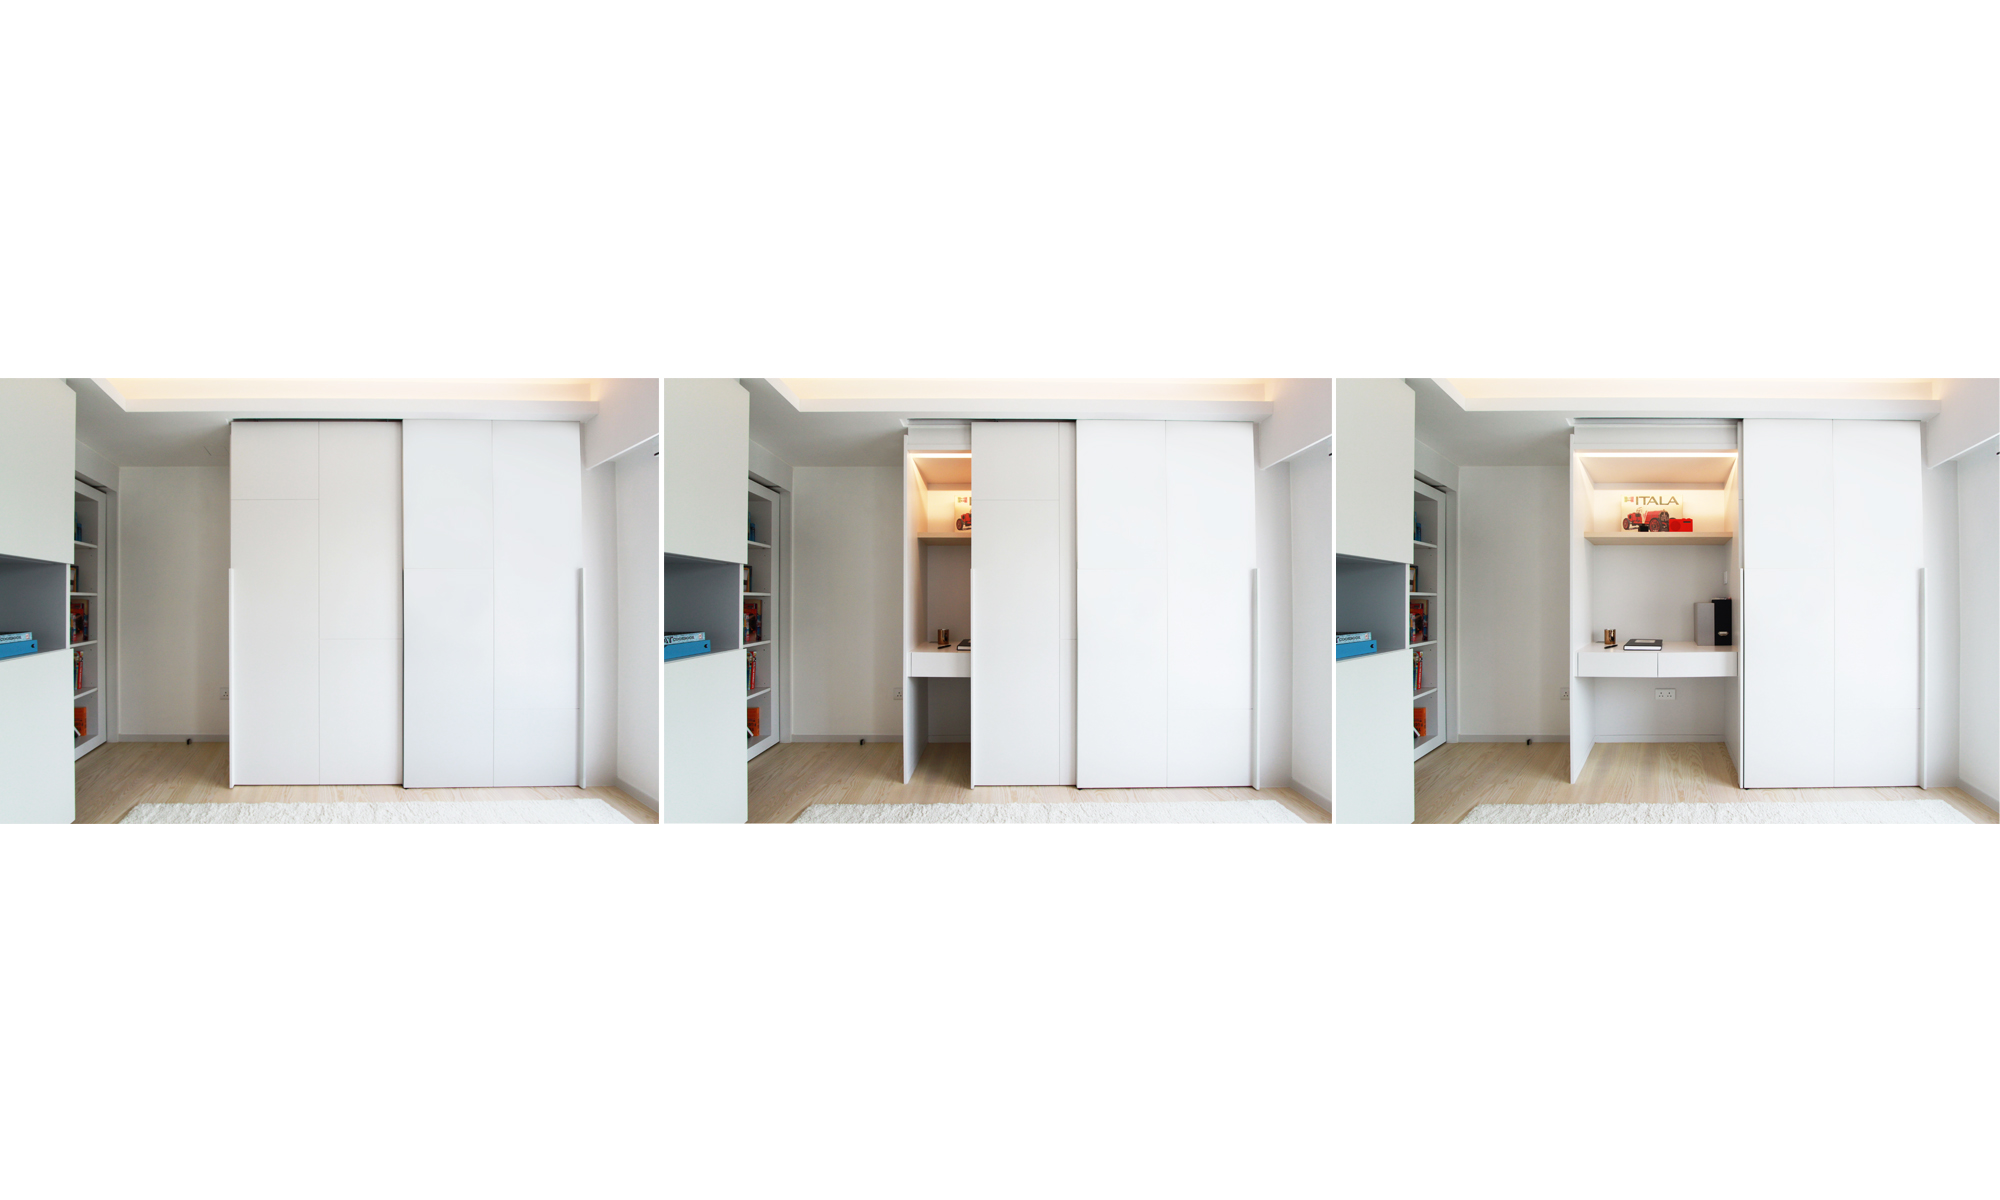 Hidden occasional desk | Occasional desk used when living area converts to bedroom mode, creating a seamless wall surface in living area on usual days.